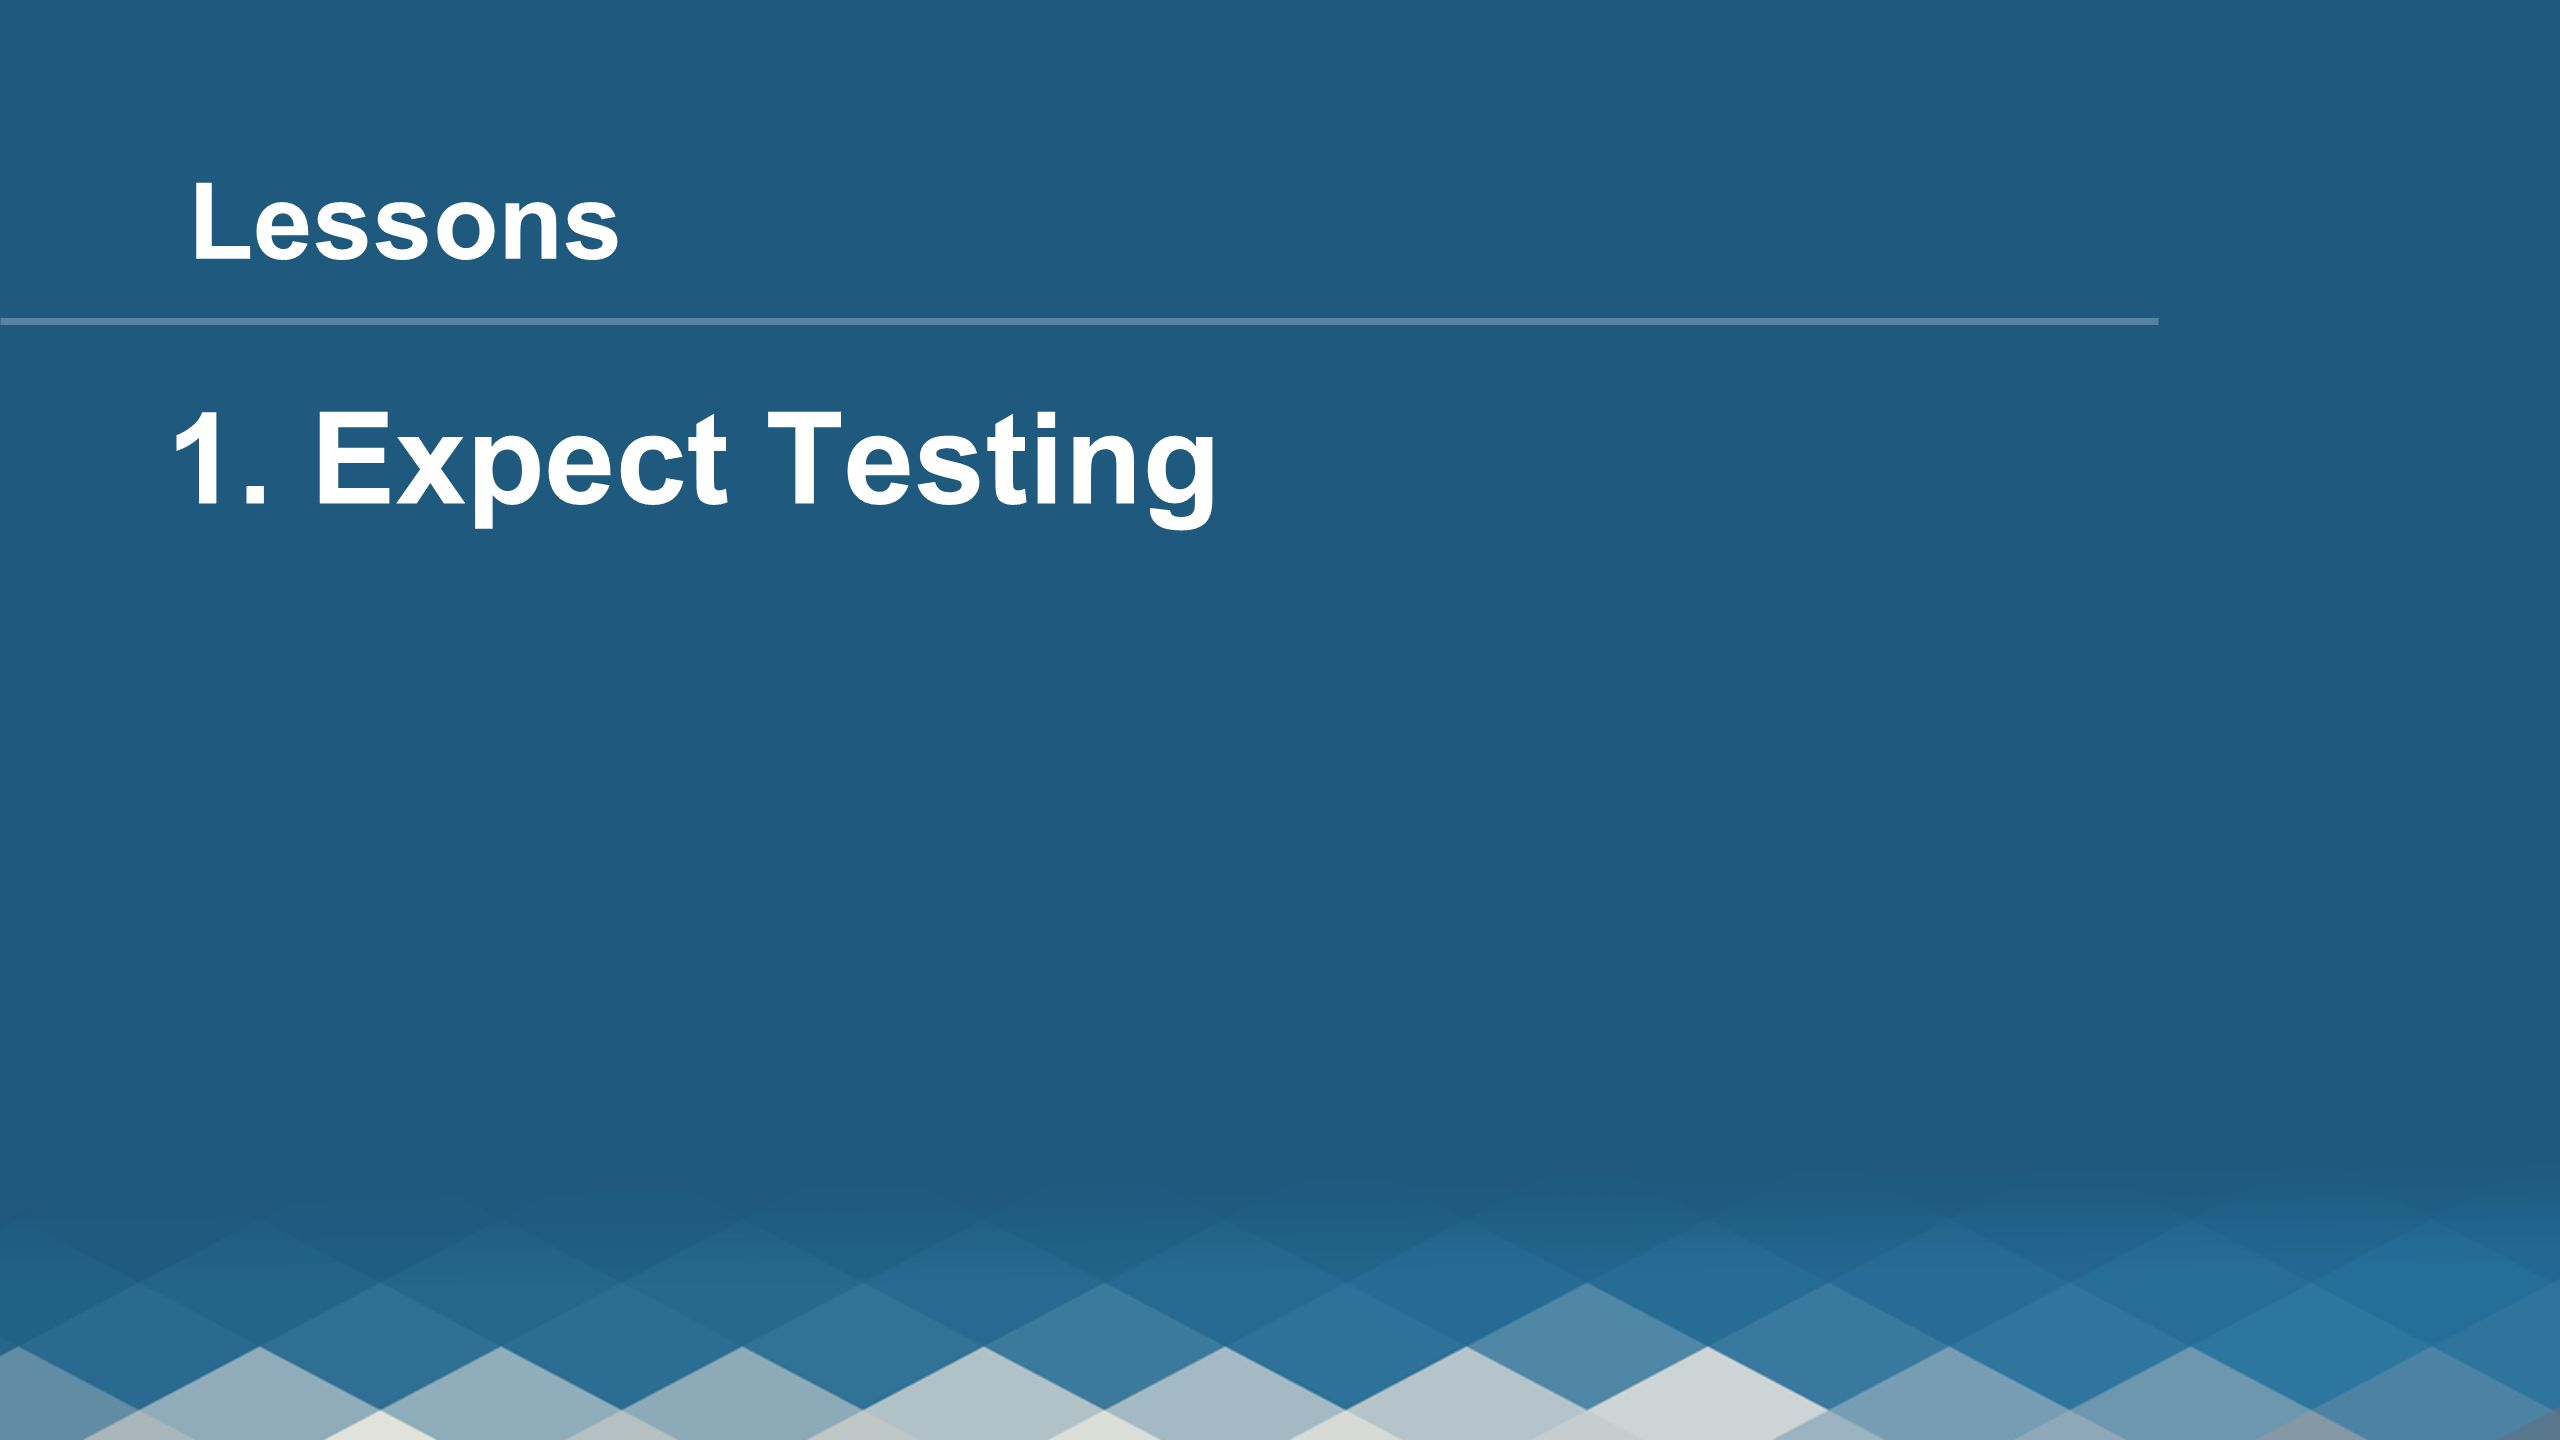 1. Expect Testing Lessons